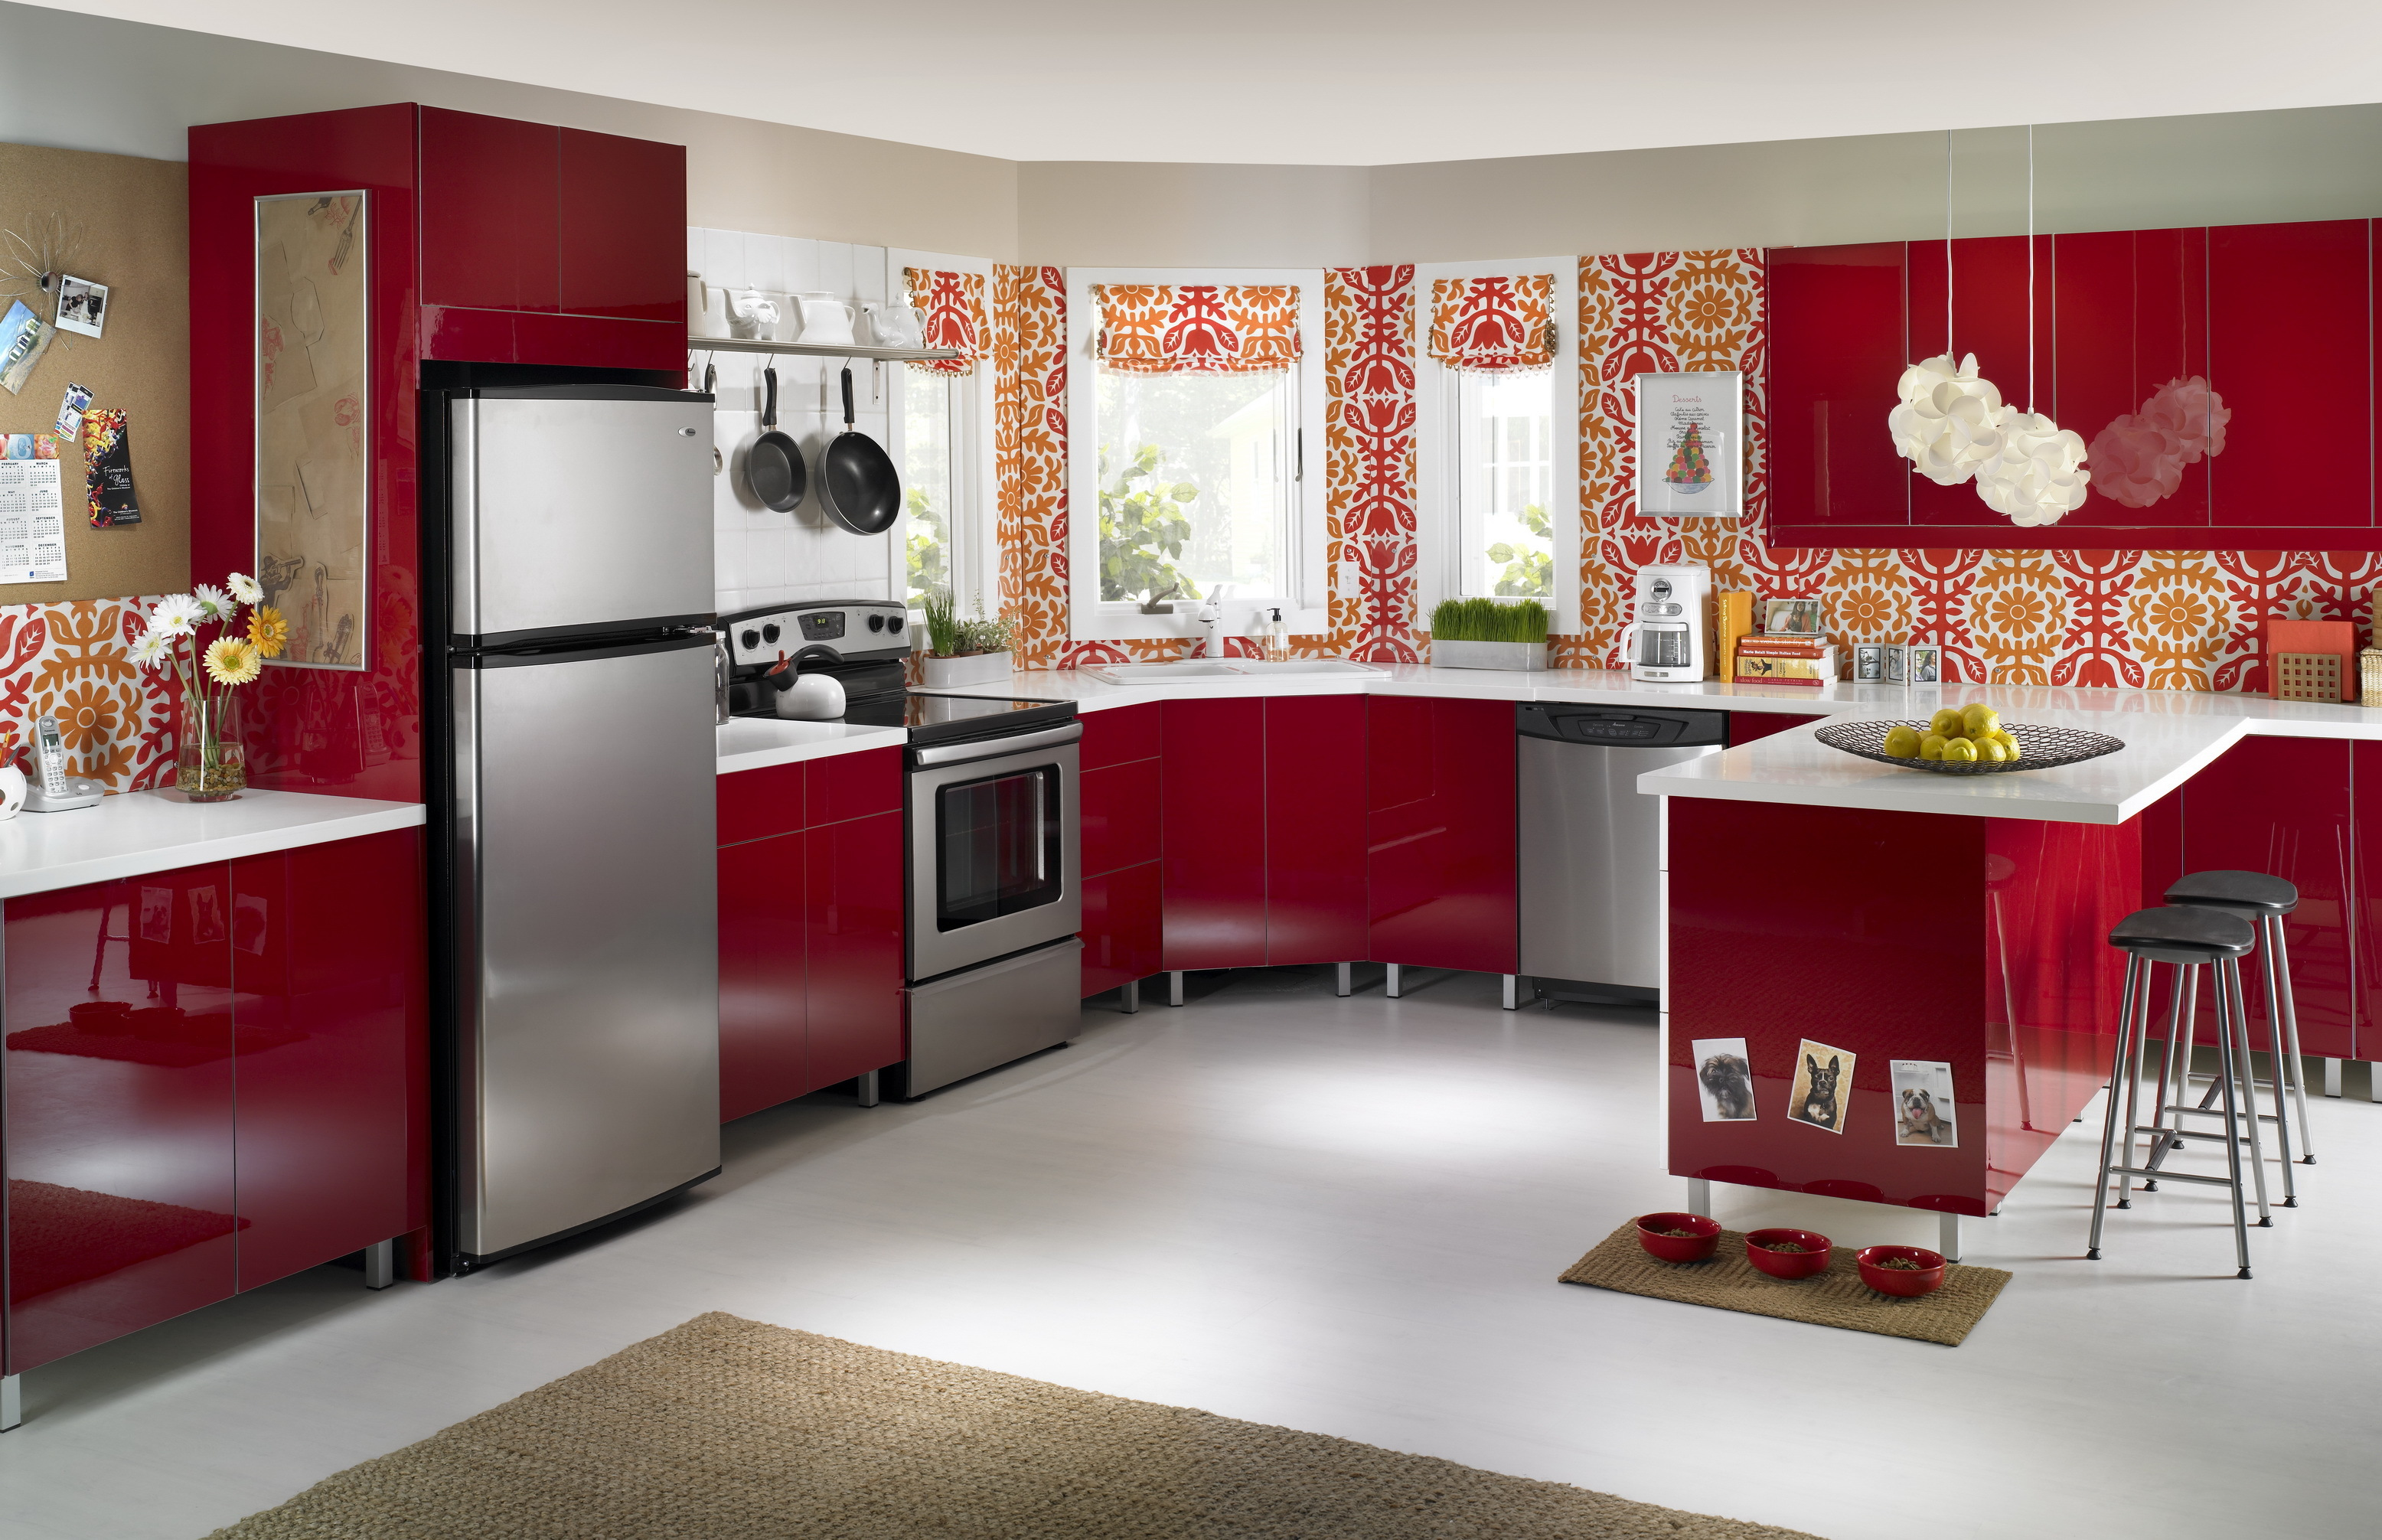 8fa4ee07af2ba elegant-kitchen-interior-design-style-with-red -cabinet-and-white-countertop-ideas